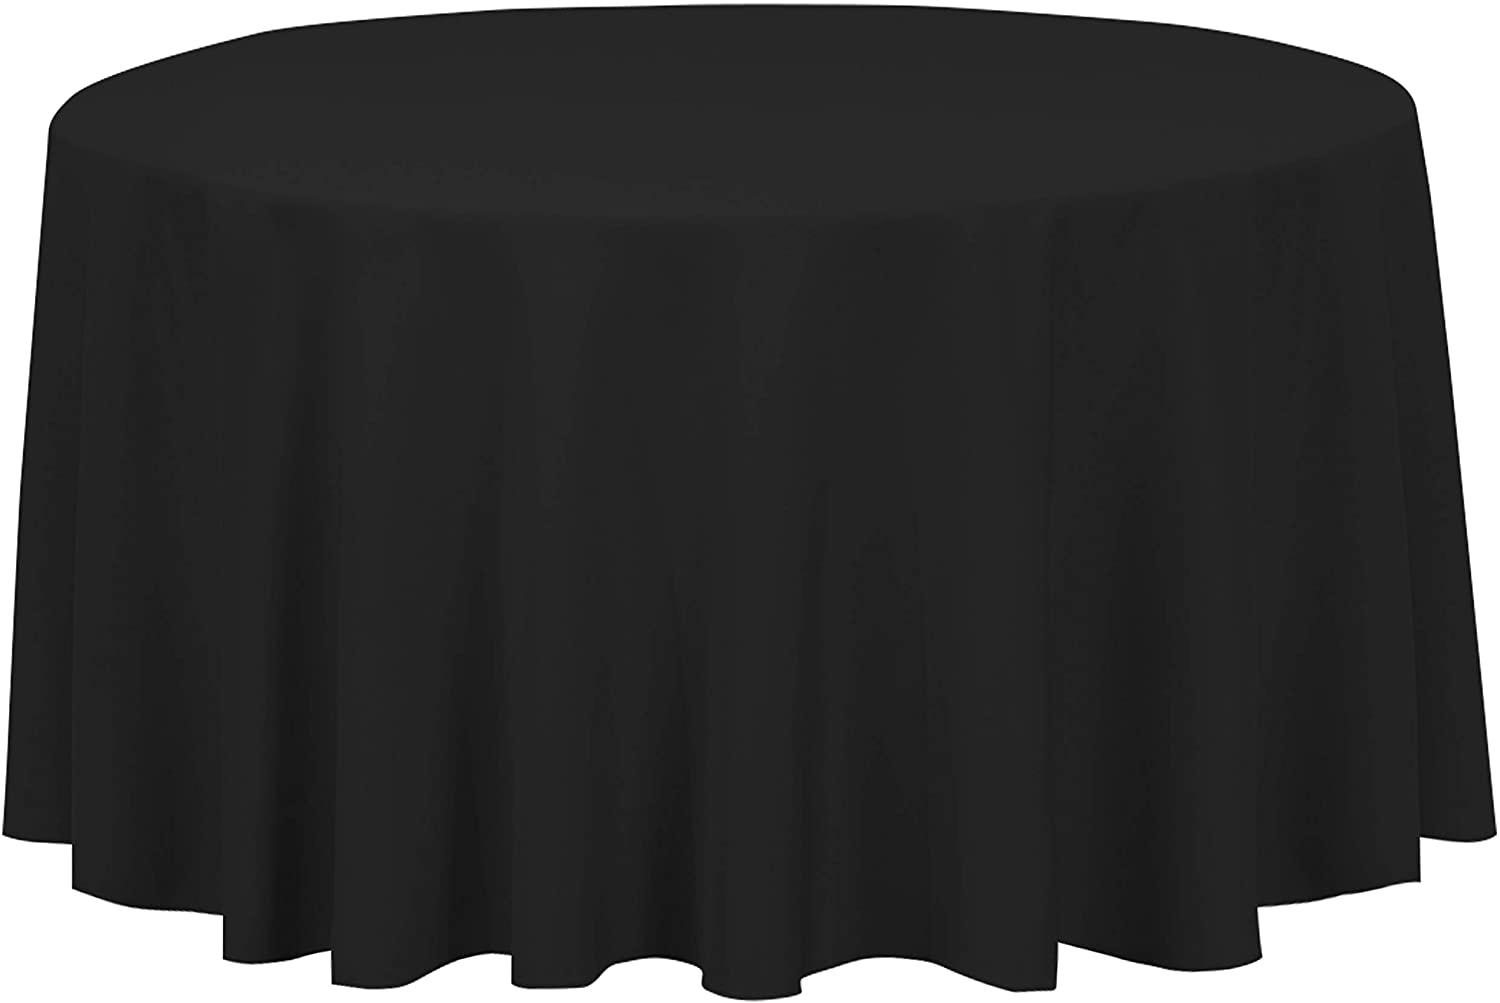 LinenTablecloth 120-Inch Round Polyester Tablecloth Black: Home & Kitchen